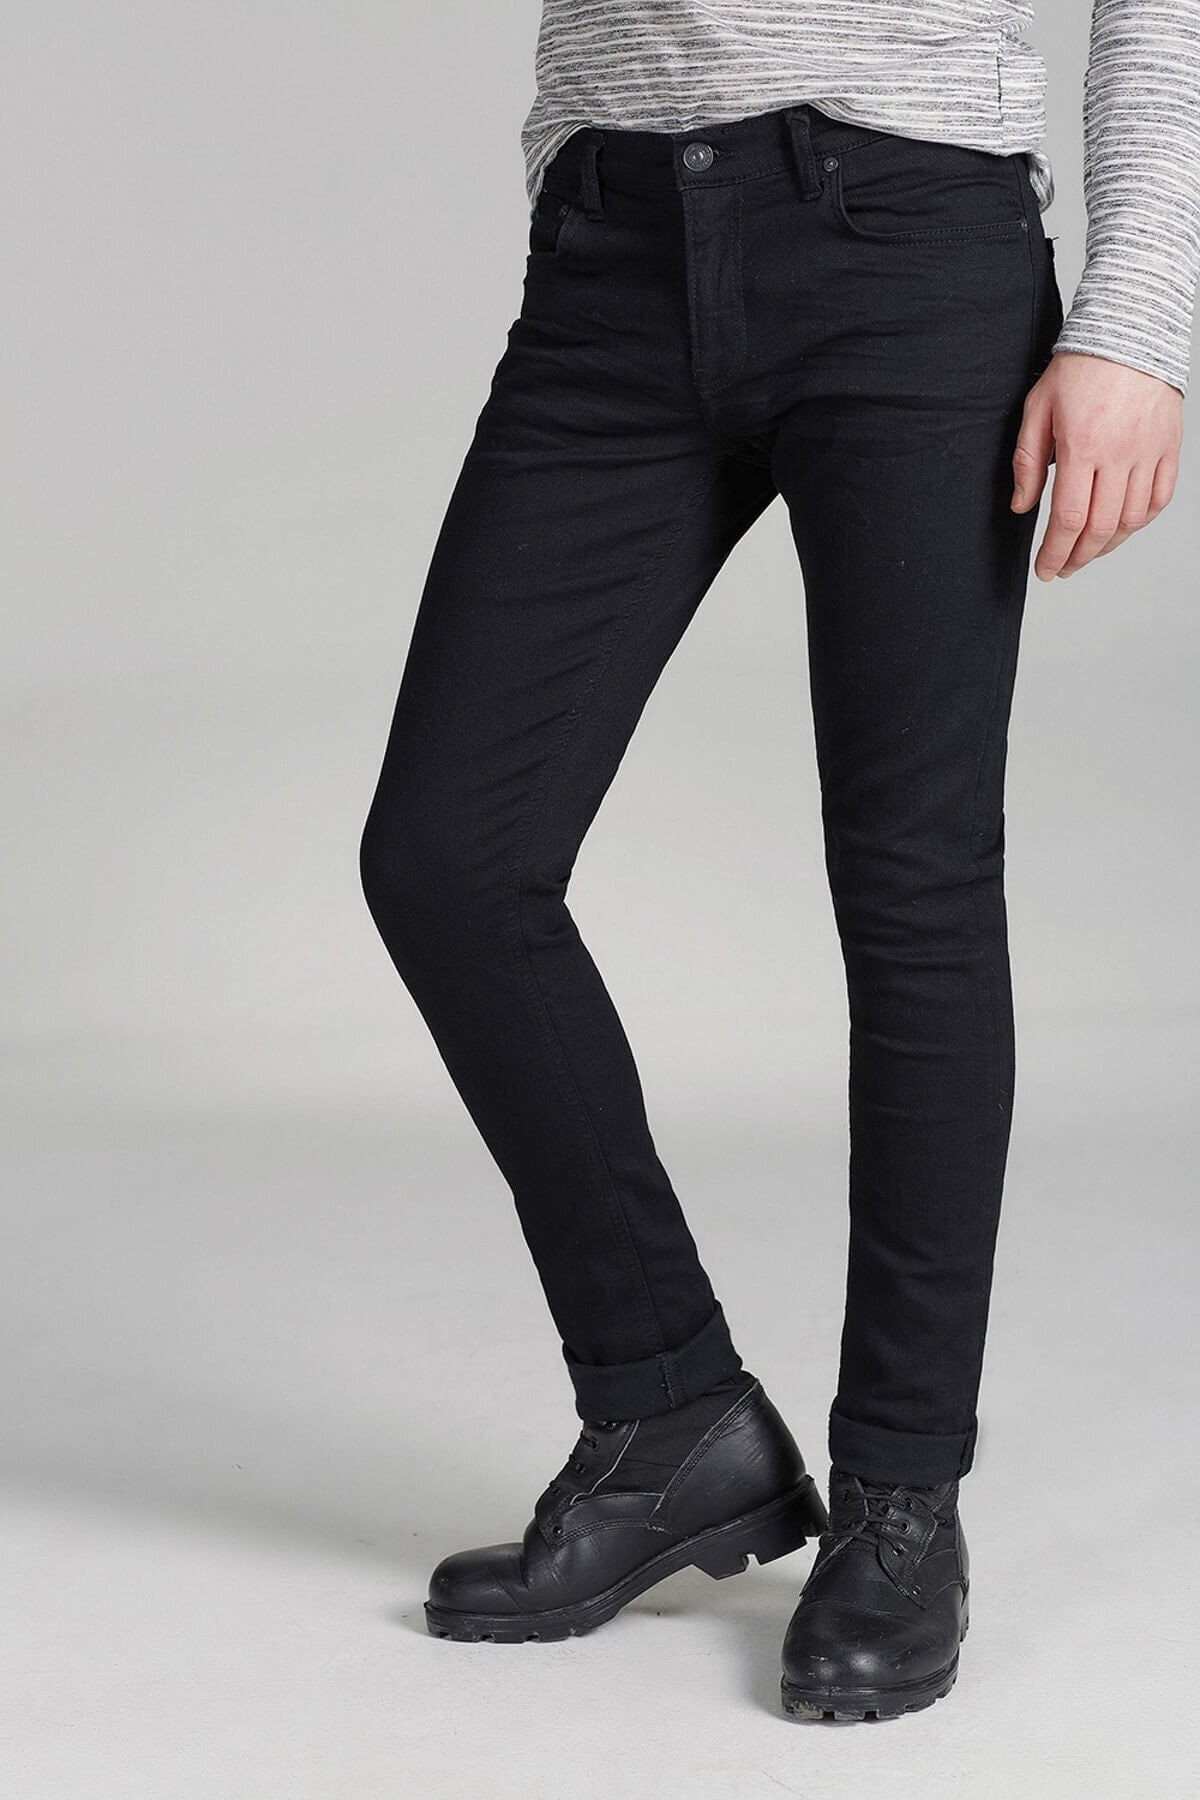 Smarty Y Black Jeans 010095145414911200